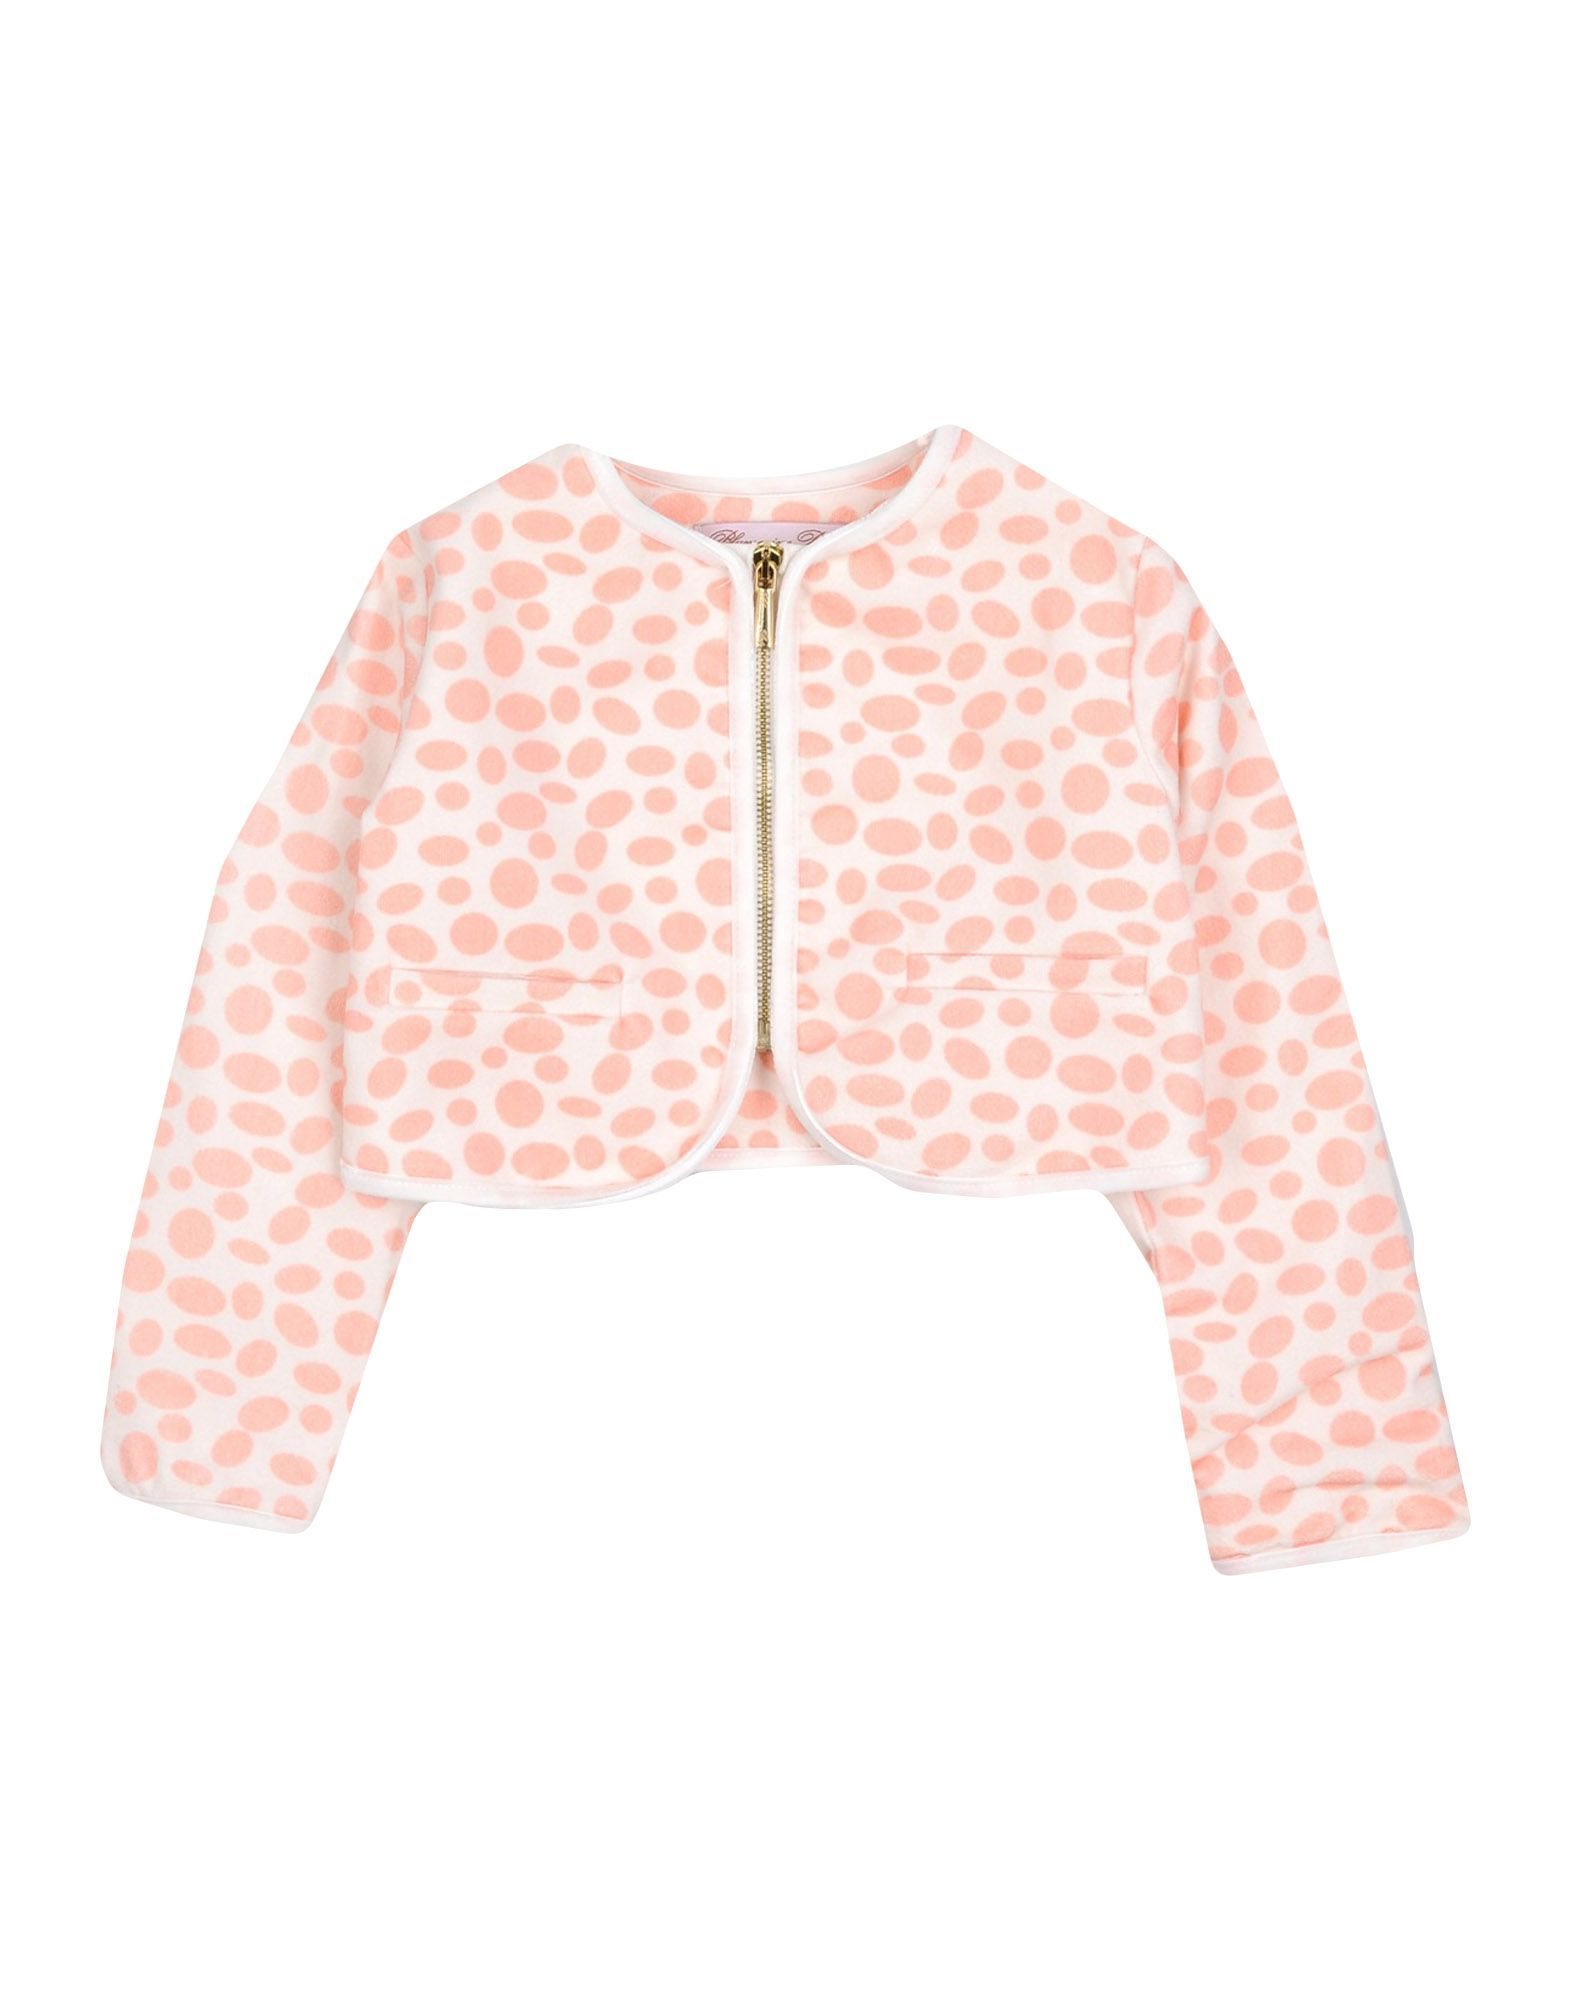 SUITS AND JACKETS Miss Blumarine Ivory Girl Cotton